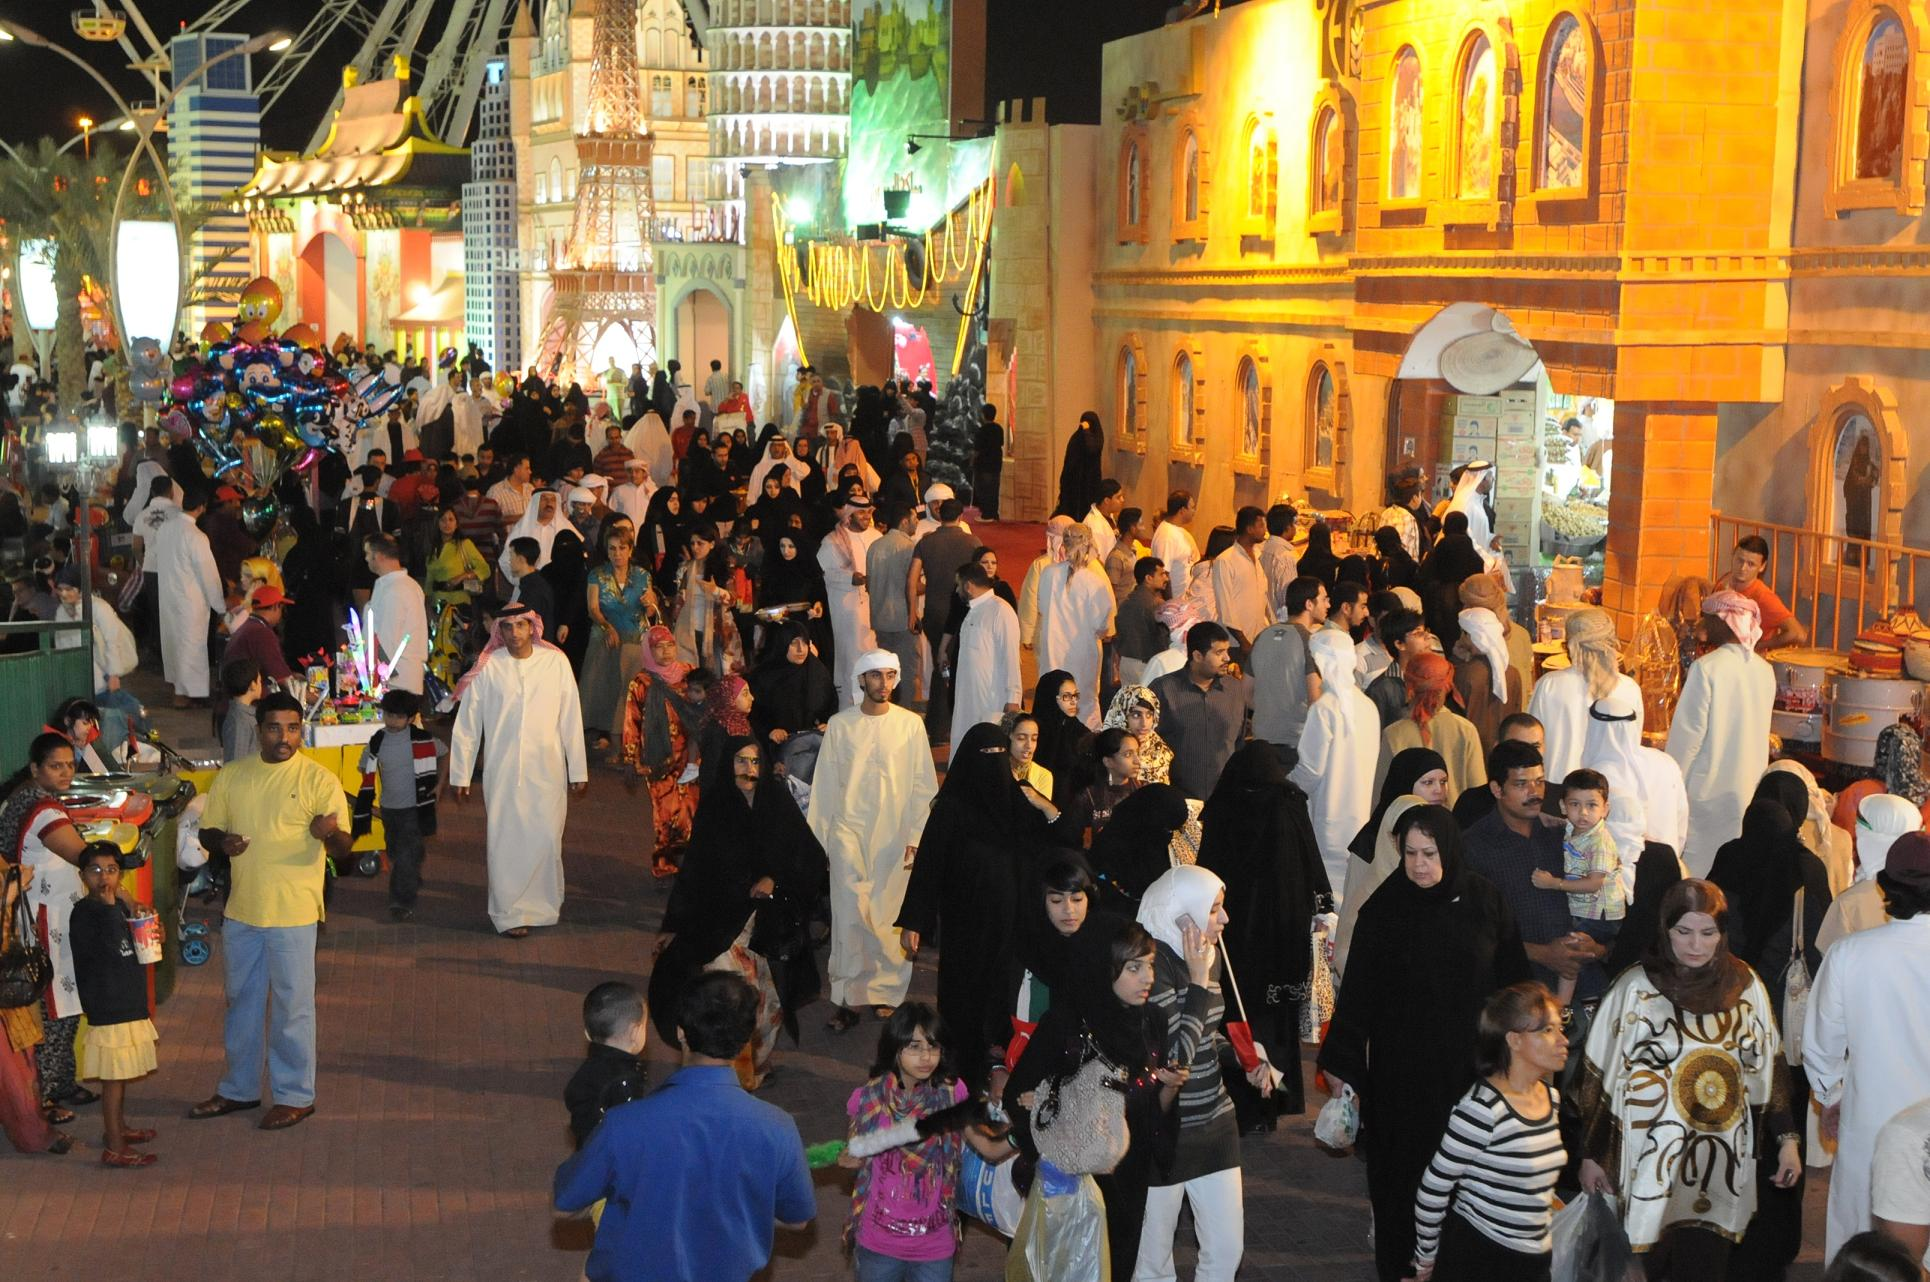 global village tremendous commercial success